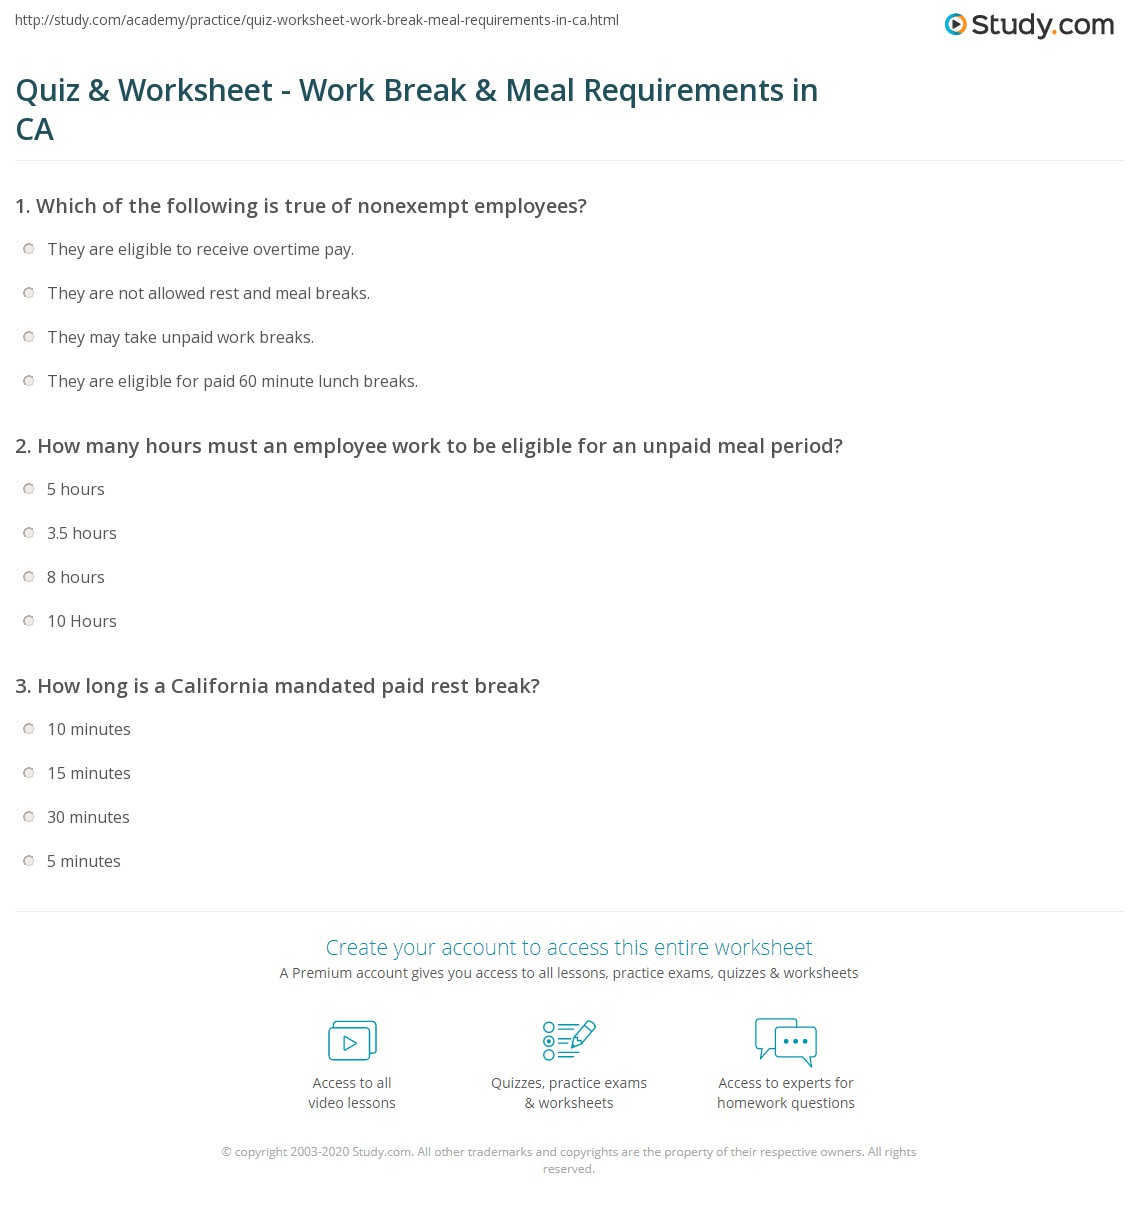 quiz & worksheet - work break & meal requirements in ca | study